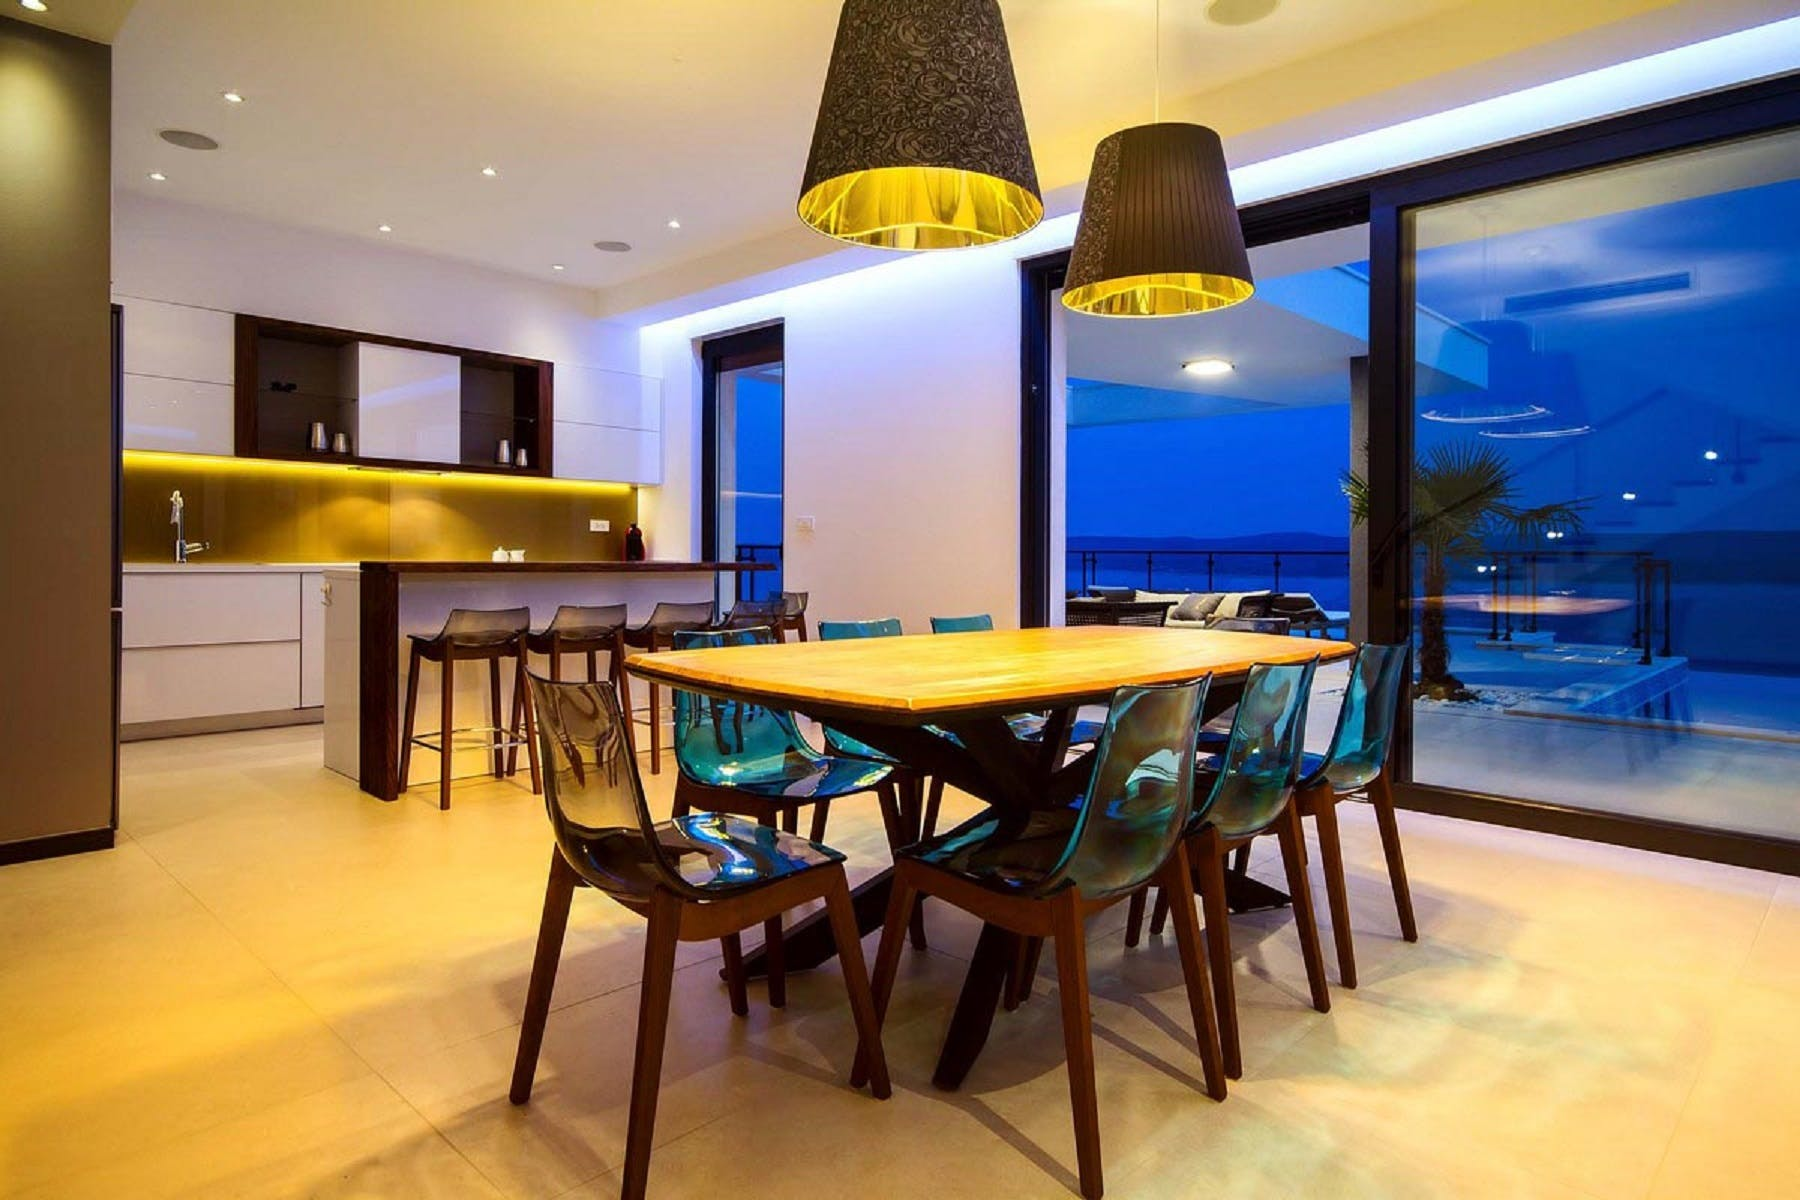 Dining table for 8 persons